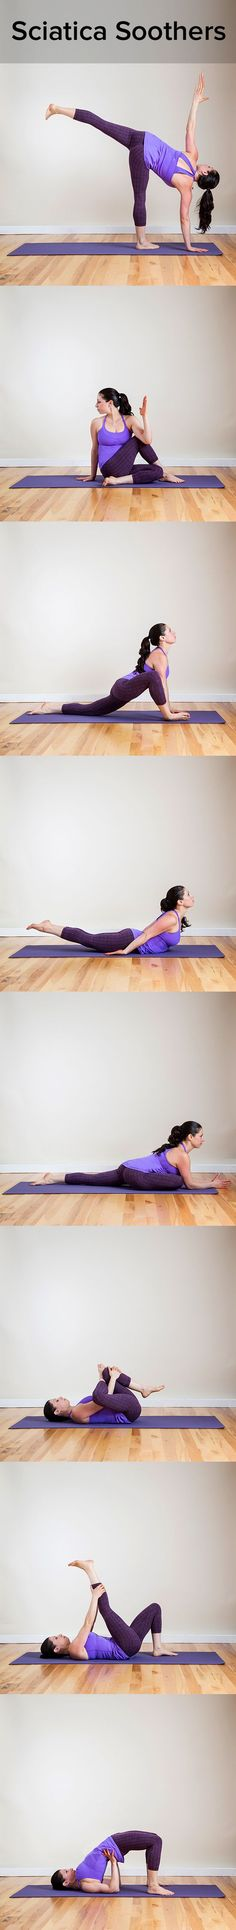 Results of a study show the positive effects of yoga on the quality of life in patients with Fibromyalgia